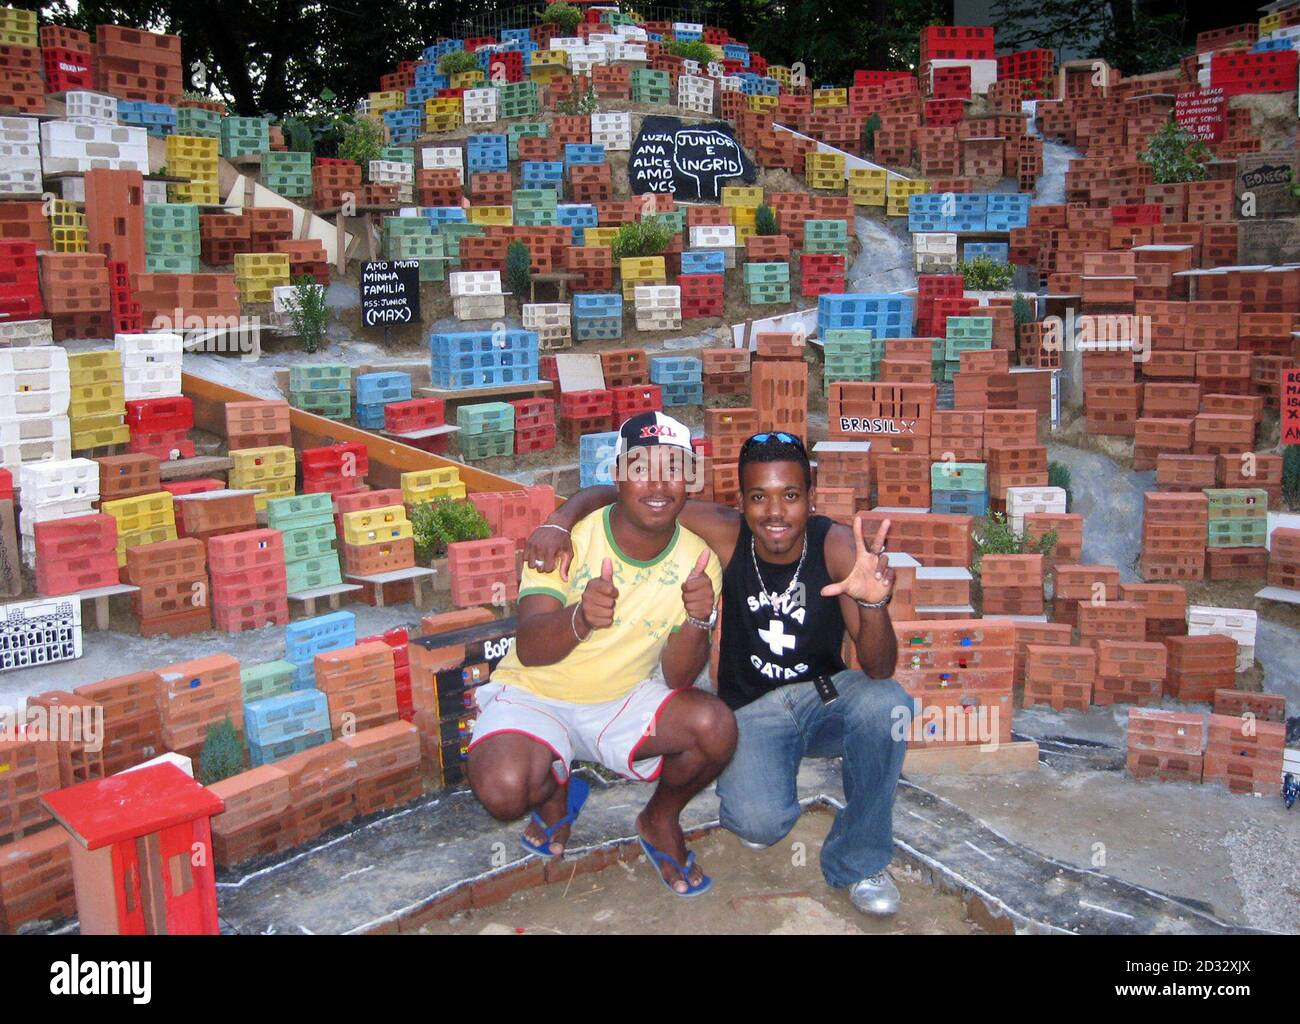 """Artists Ranieri Dias and Nelcirlan Souza De Oliveira, part of a group to work on the project, pose with their miniature Brazilian shantytown on display during the arts Biennale in Venice June 9, 2007. Italy's picturesque lagoon city of Venice is known for many things, including, at least for now, a Brazilian shantytown. The so-called """"Morrinho project"""", created by the residents of a real Rio de Janeiro shantytown, was among one of the most talked-about installations at the Venice Biennale art festival, sometimes called the """"Oscars"""" of the art world. Picture taken June 9, 2007   REUTERS/Phil St Banque D'Images"""